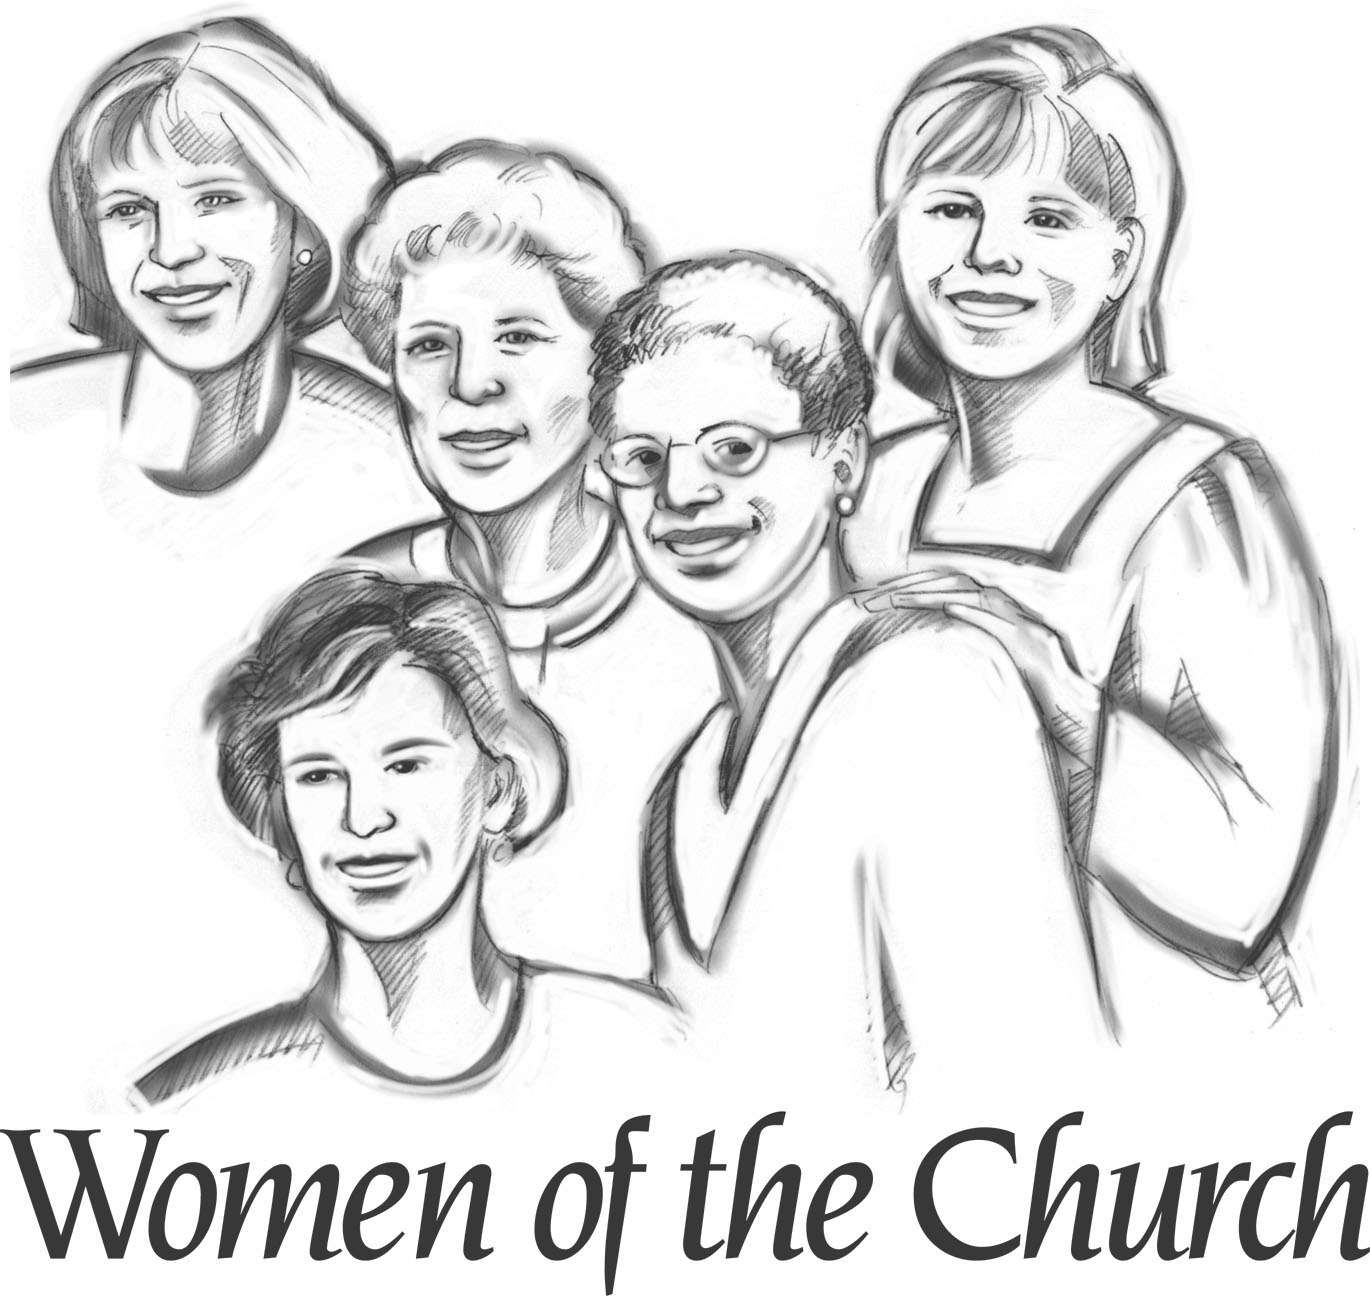 Together And The Words Women Of The Church Across The Bottom